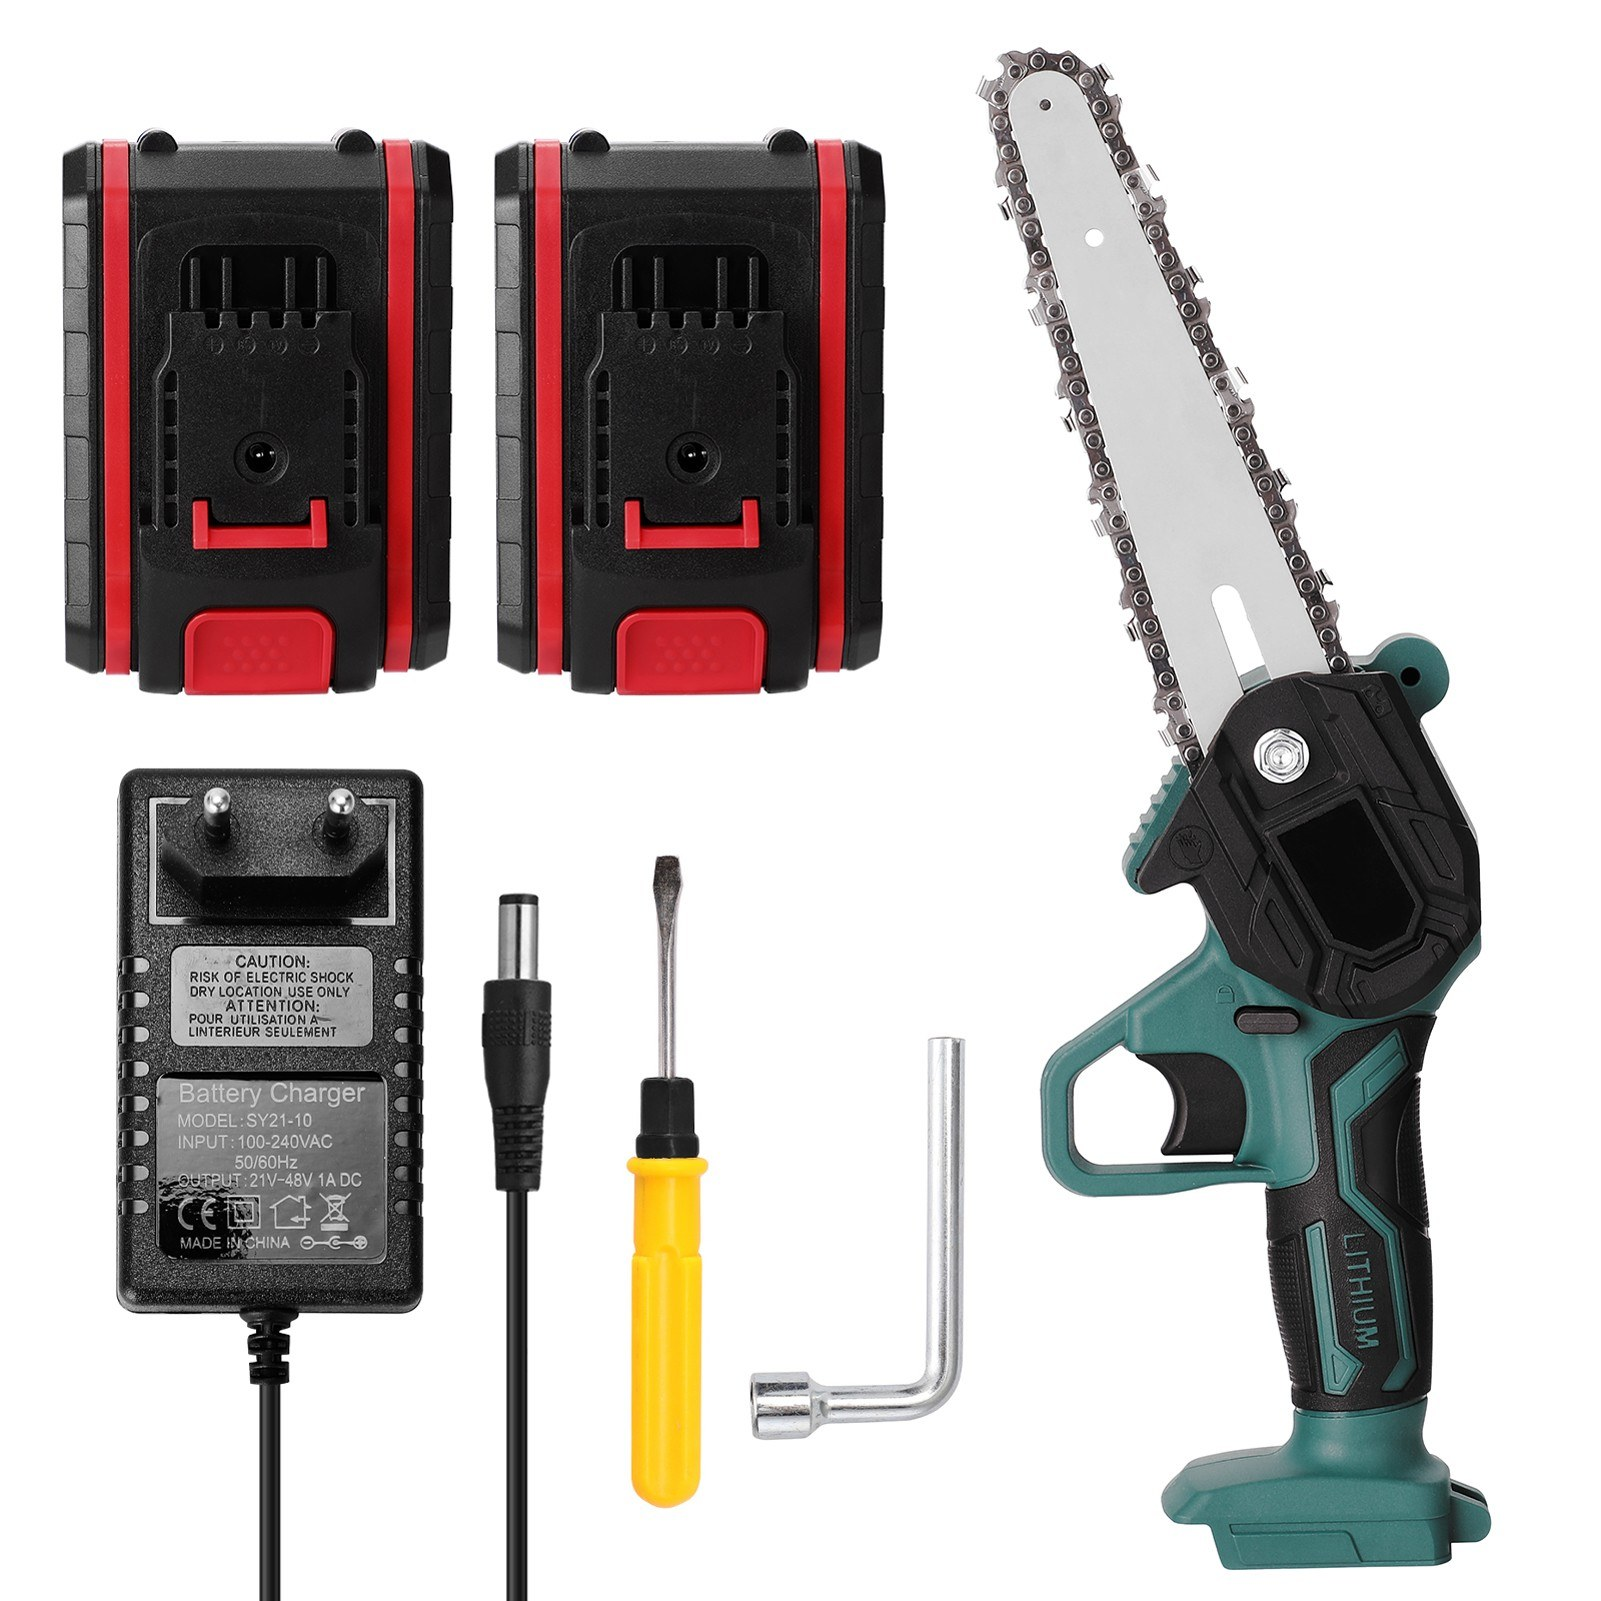 Cafago - 45% OFF 21V Portable Mini Electric Pruning Saw Rechargeable Small Wood Spliting Chainsaw,free shipping+$46.6